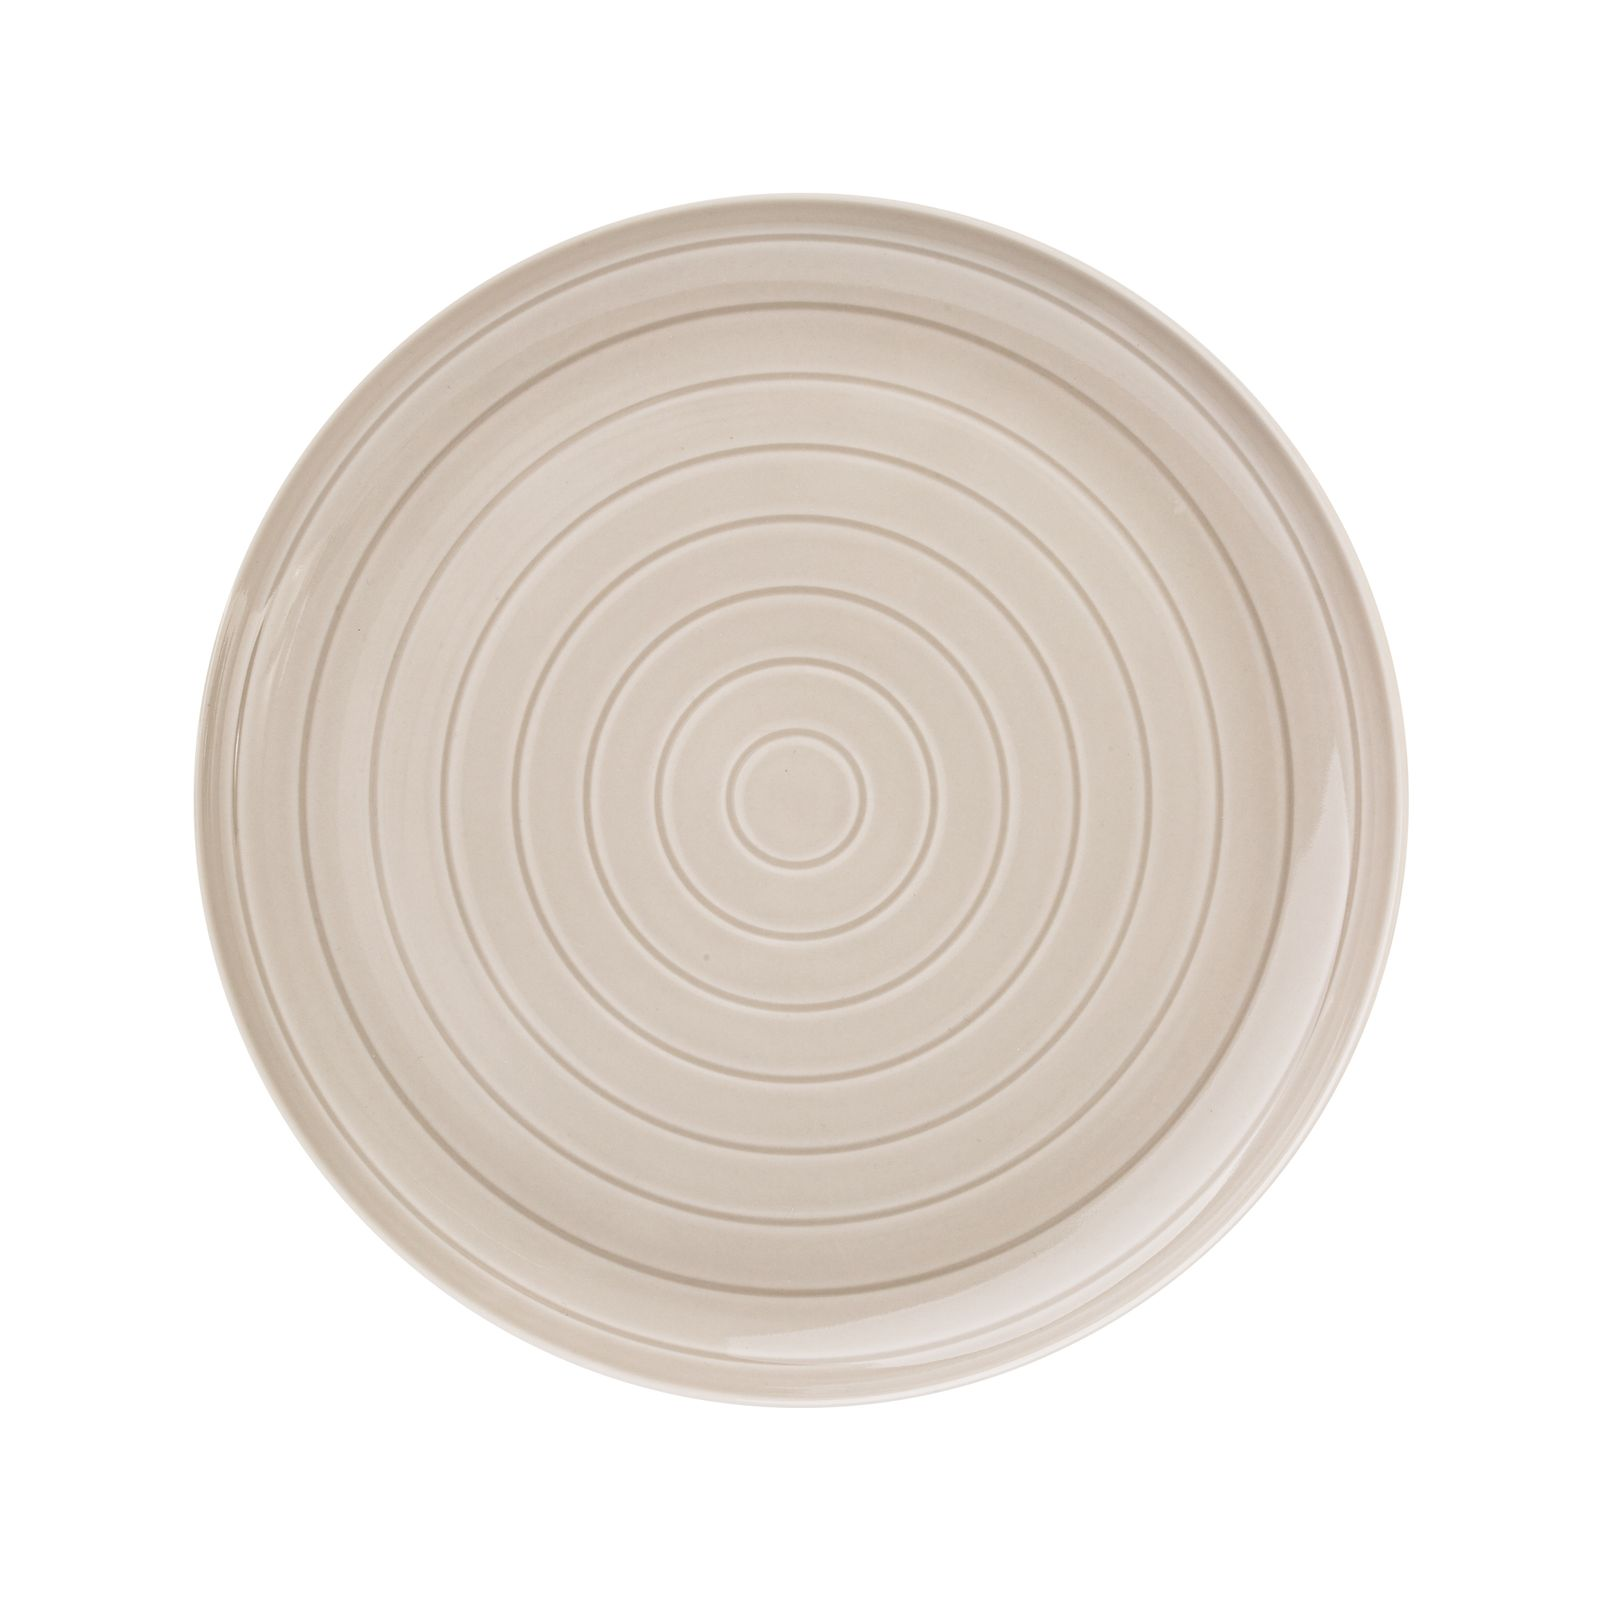 Dinner plate Piano 27 cm gray AMBITION